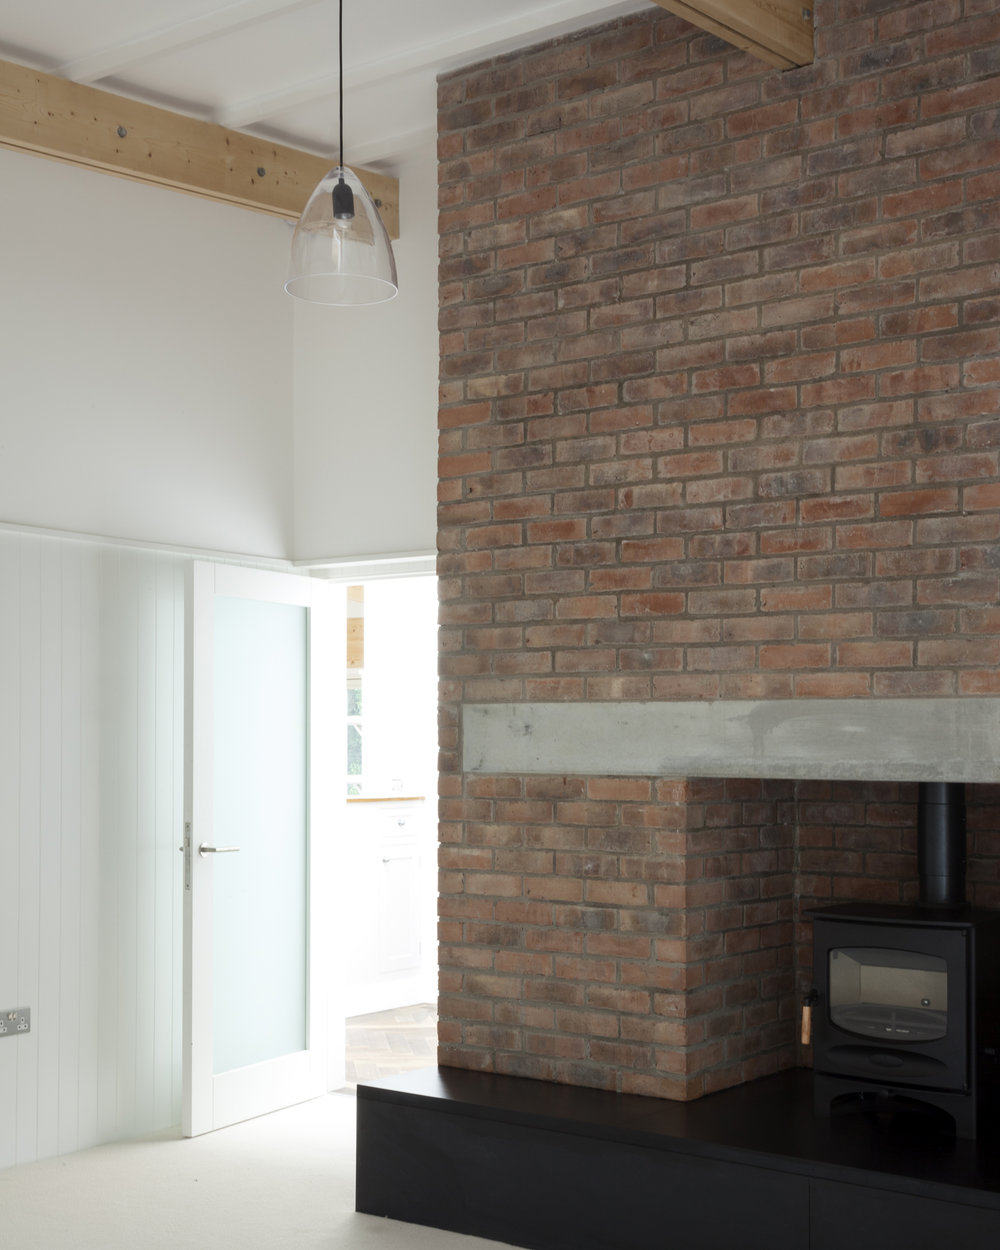 Fireplace_RoseGardenHouse_TrionaStackArchitects.jpg